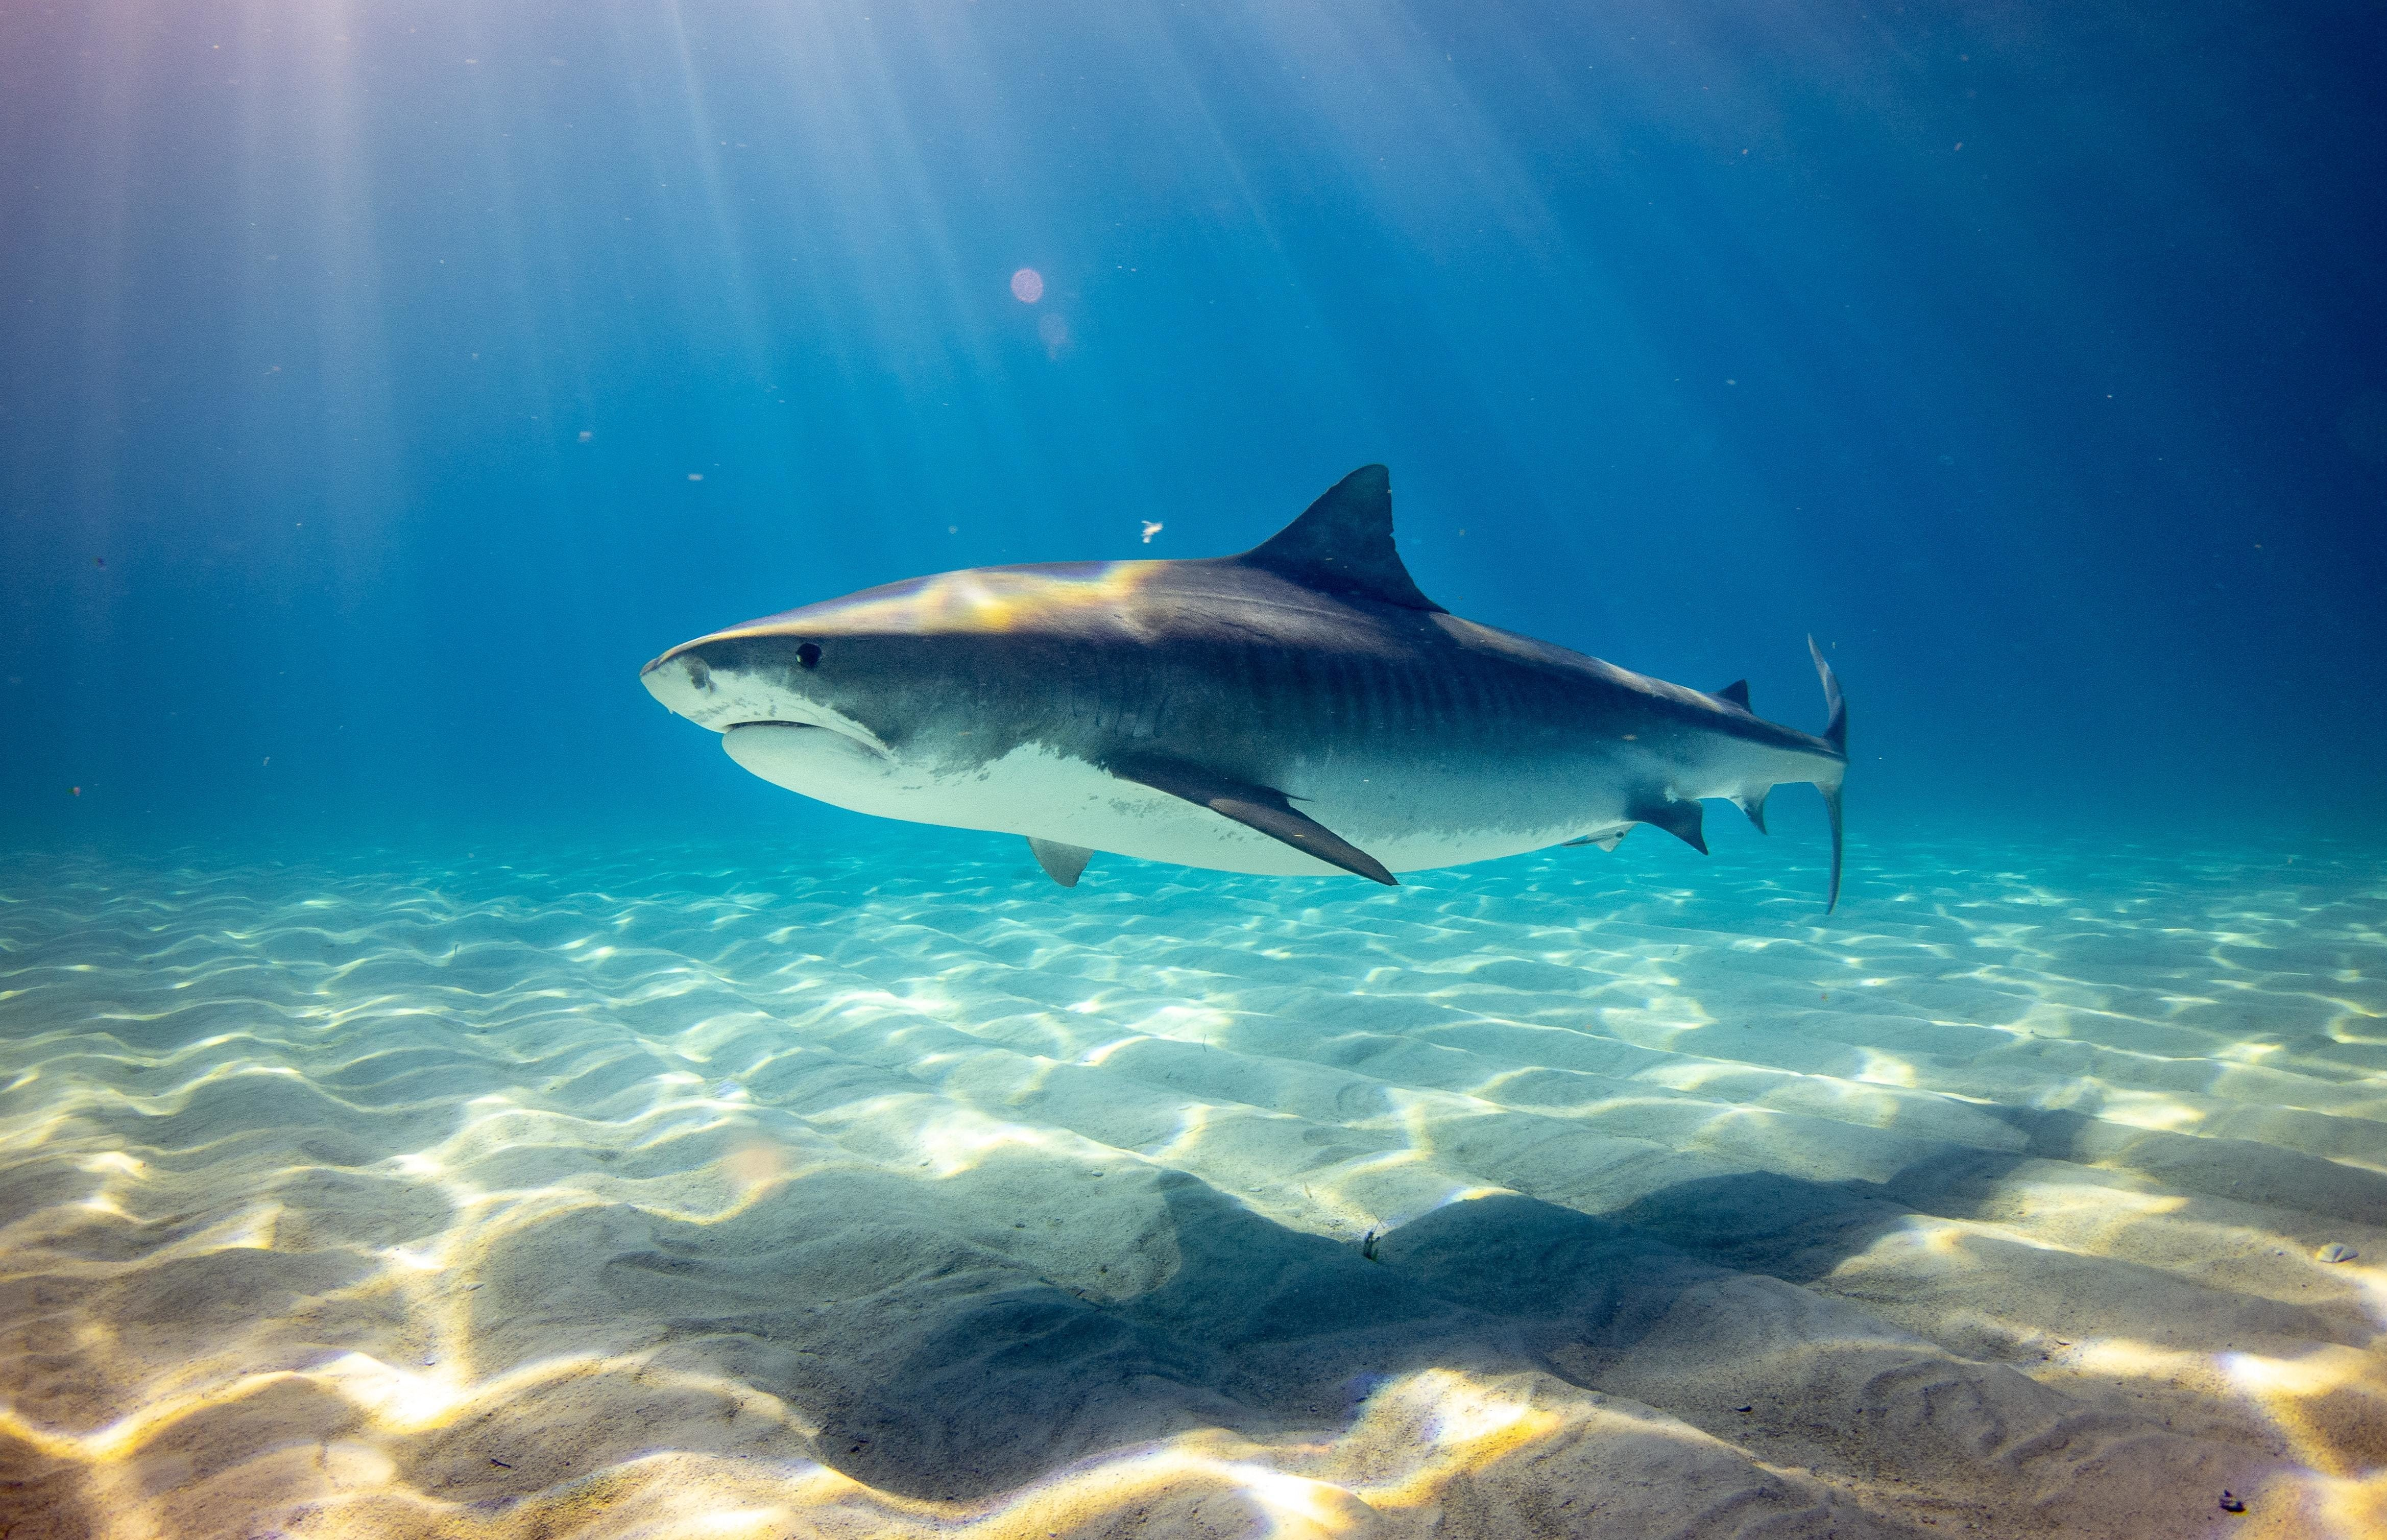 sharks, like this one pictured here, are essential for ocean biodiversity